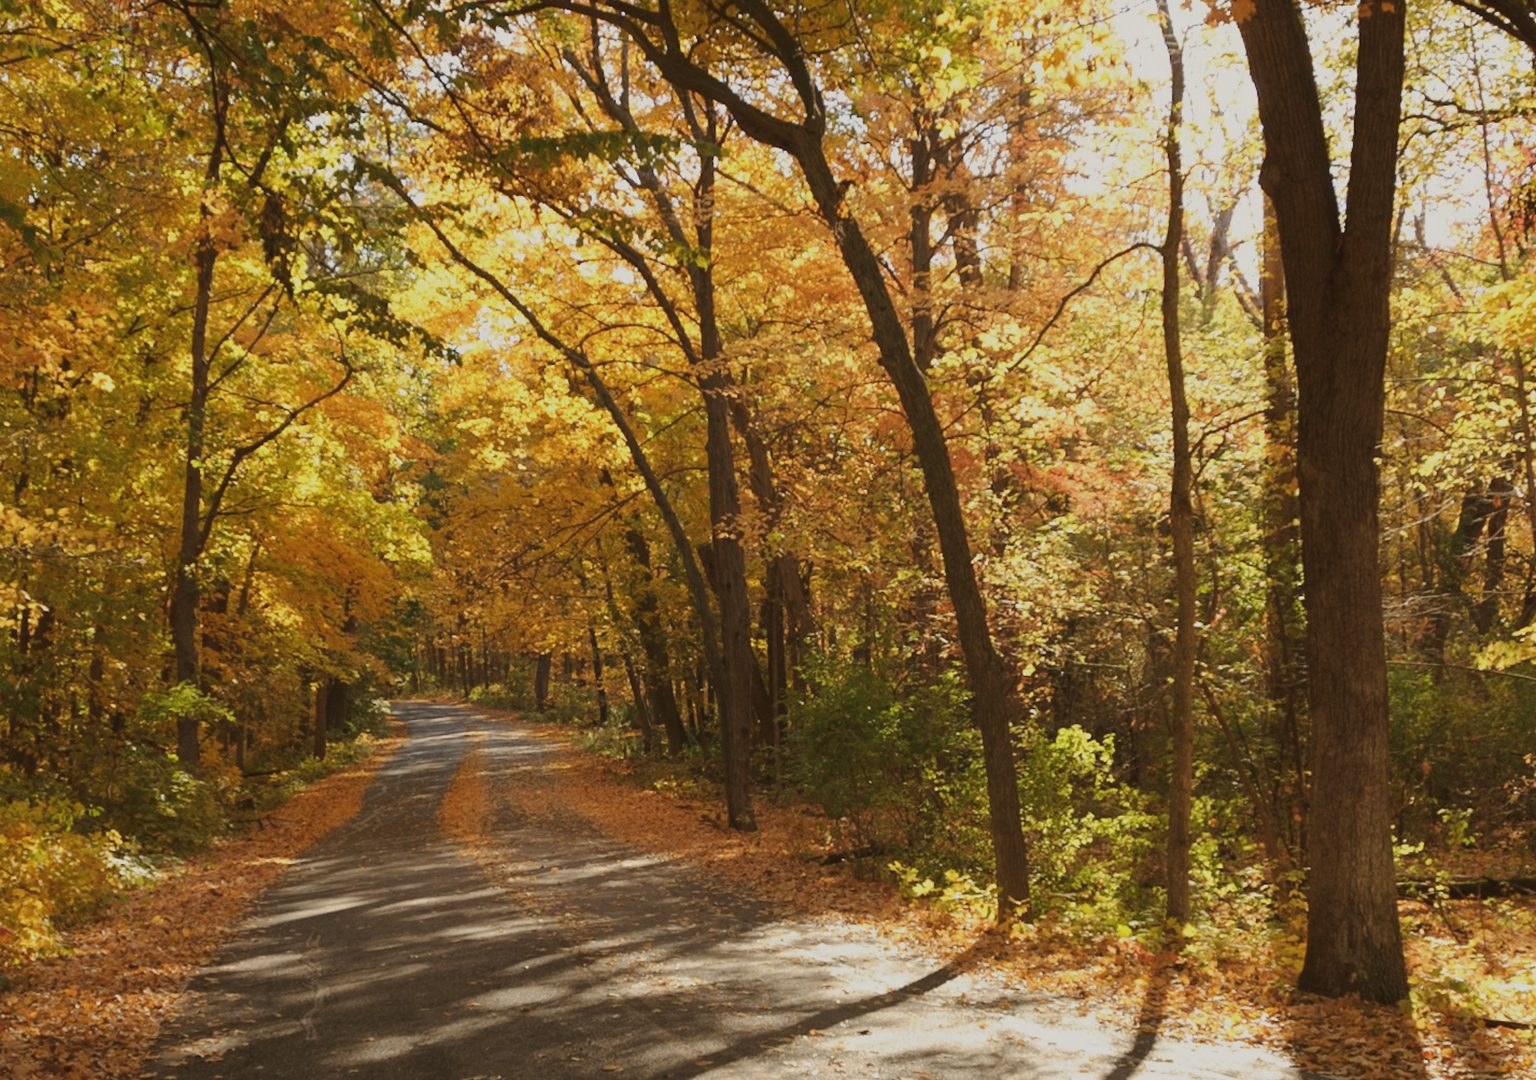 A road extends into the background through wooded area as sunlight shines through trees during autumn